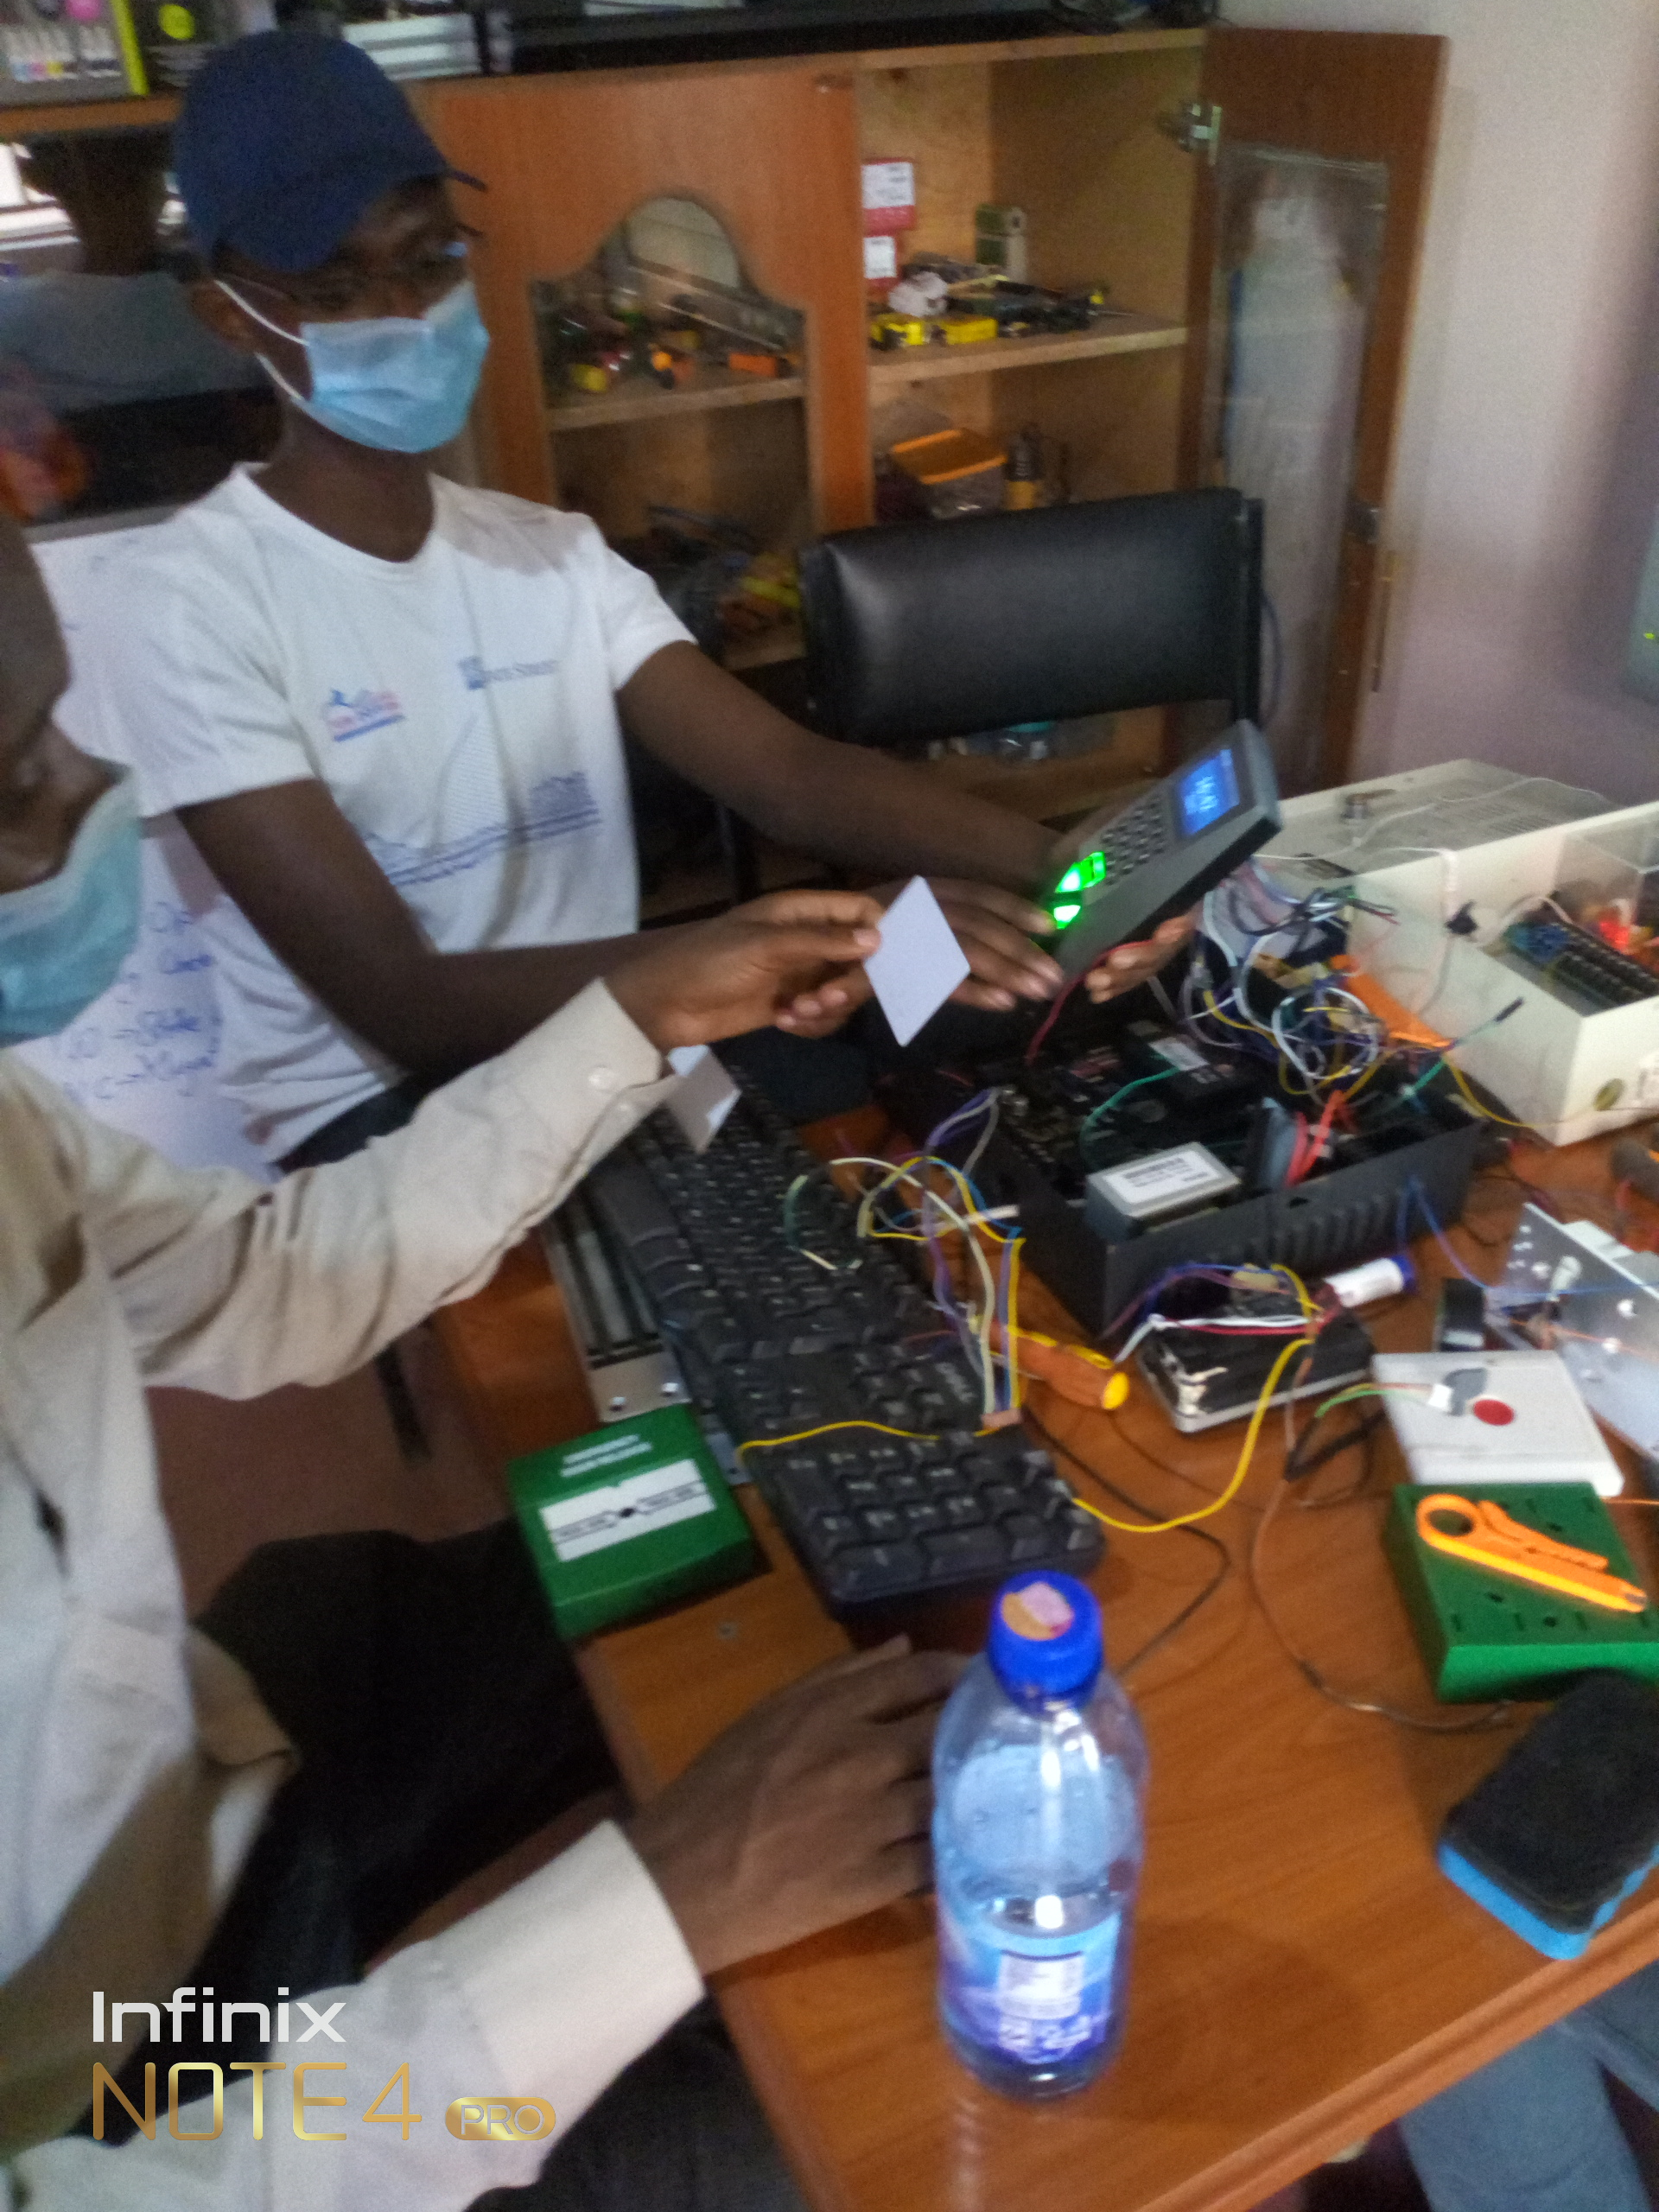 Trainees programming an access control device  during one of the training sessions